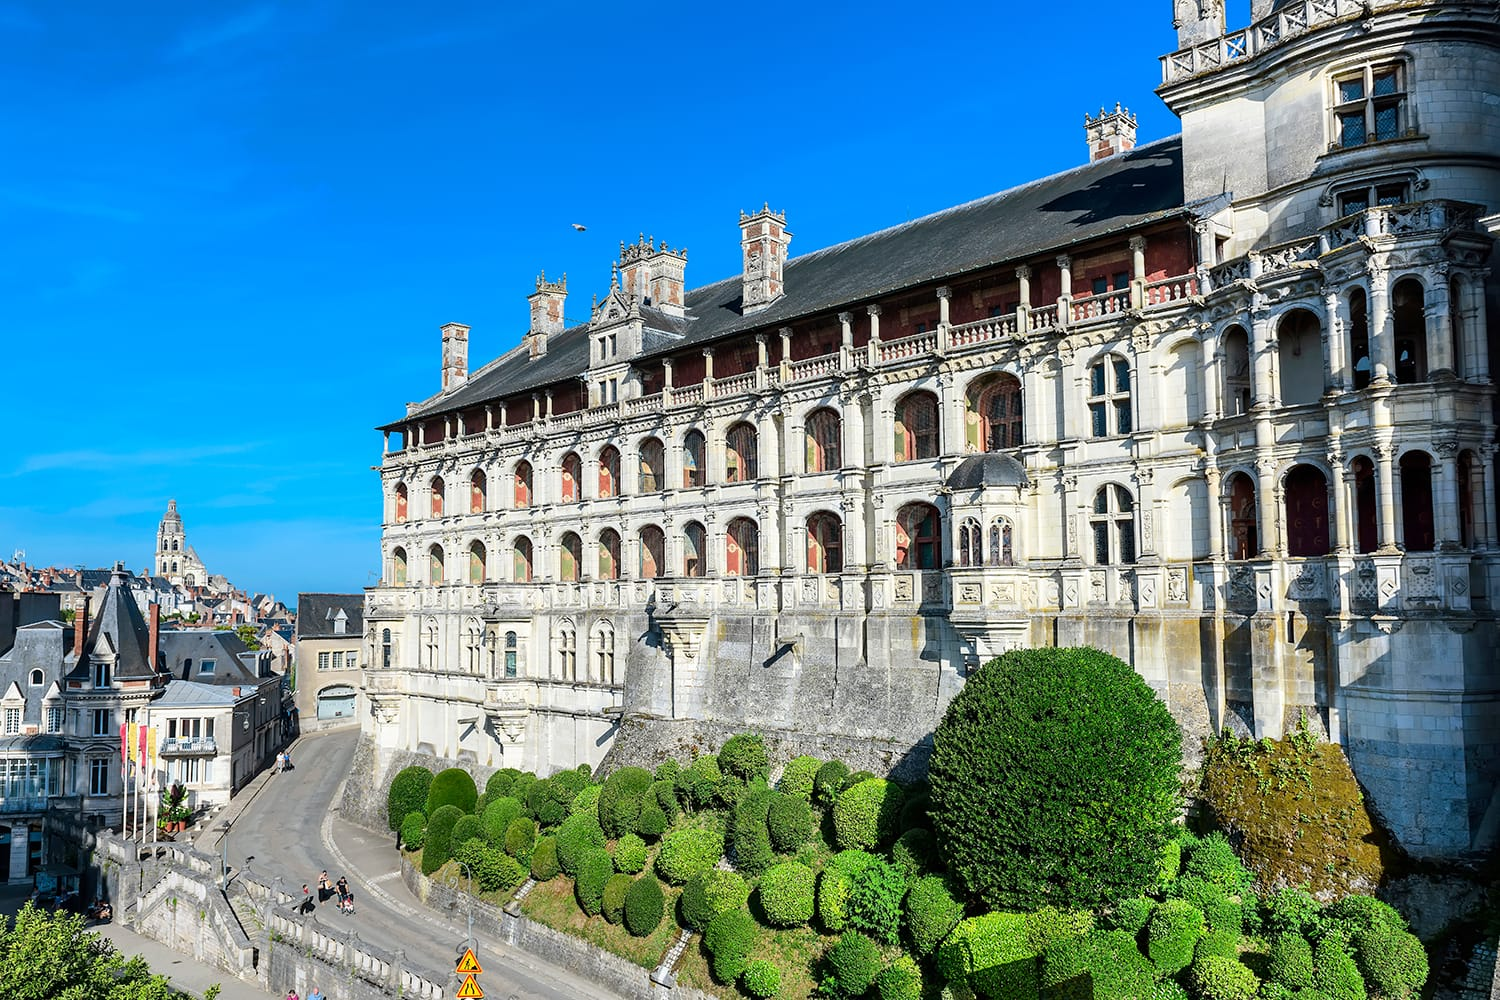 The Royal Palace of Castle of Blois (Chateau de Blois). Included in the top ten castles of the Loire Valley, France,